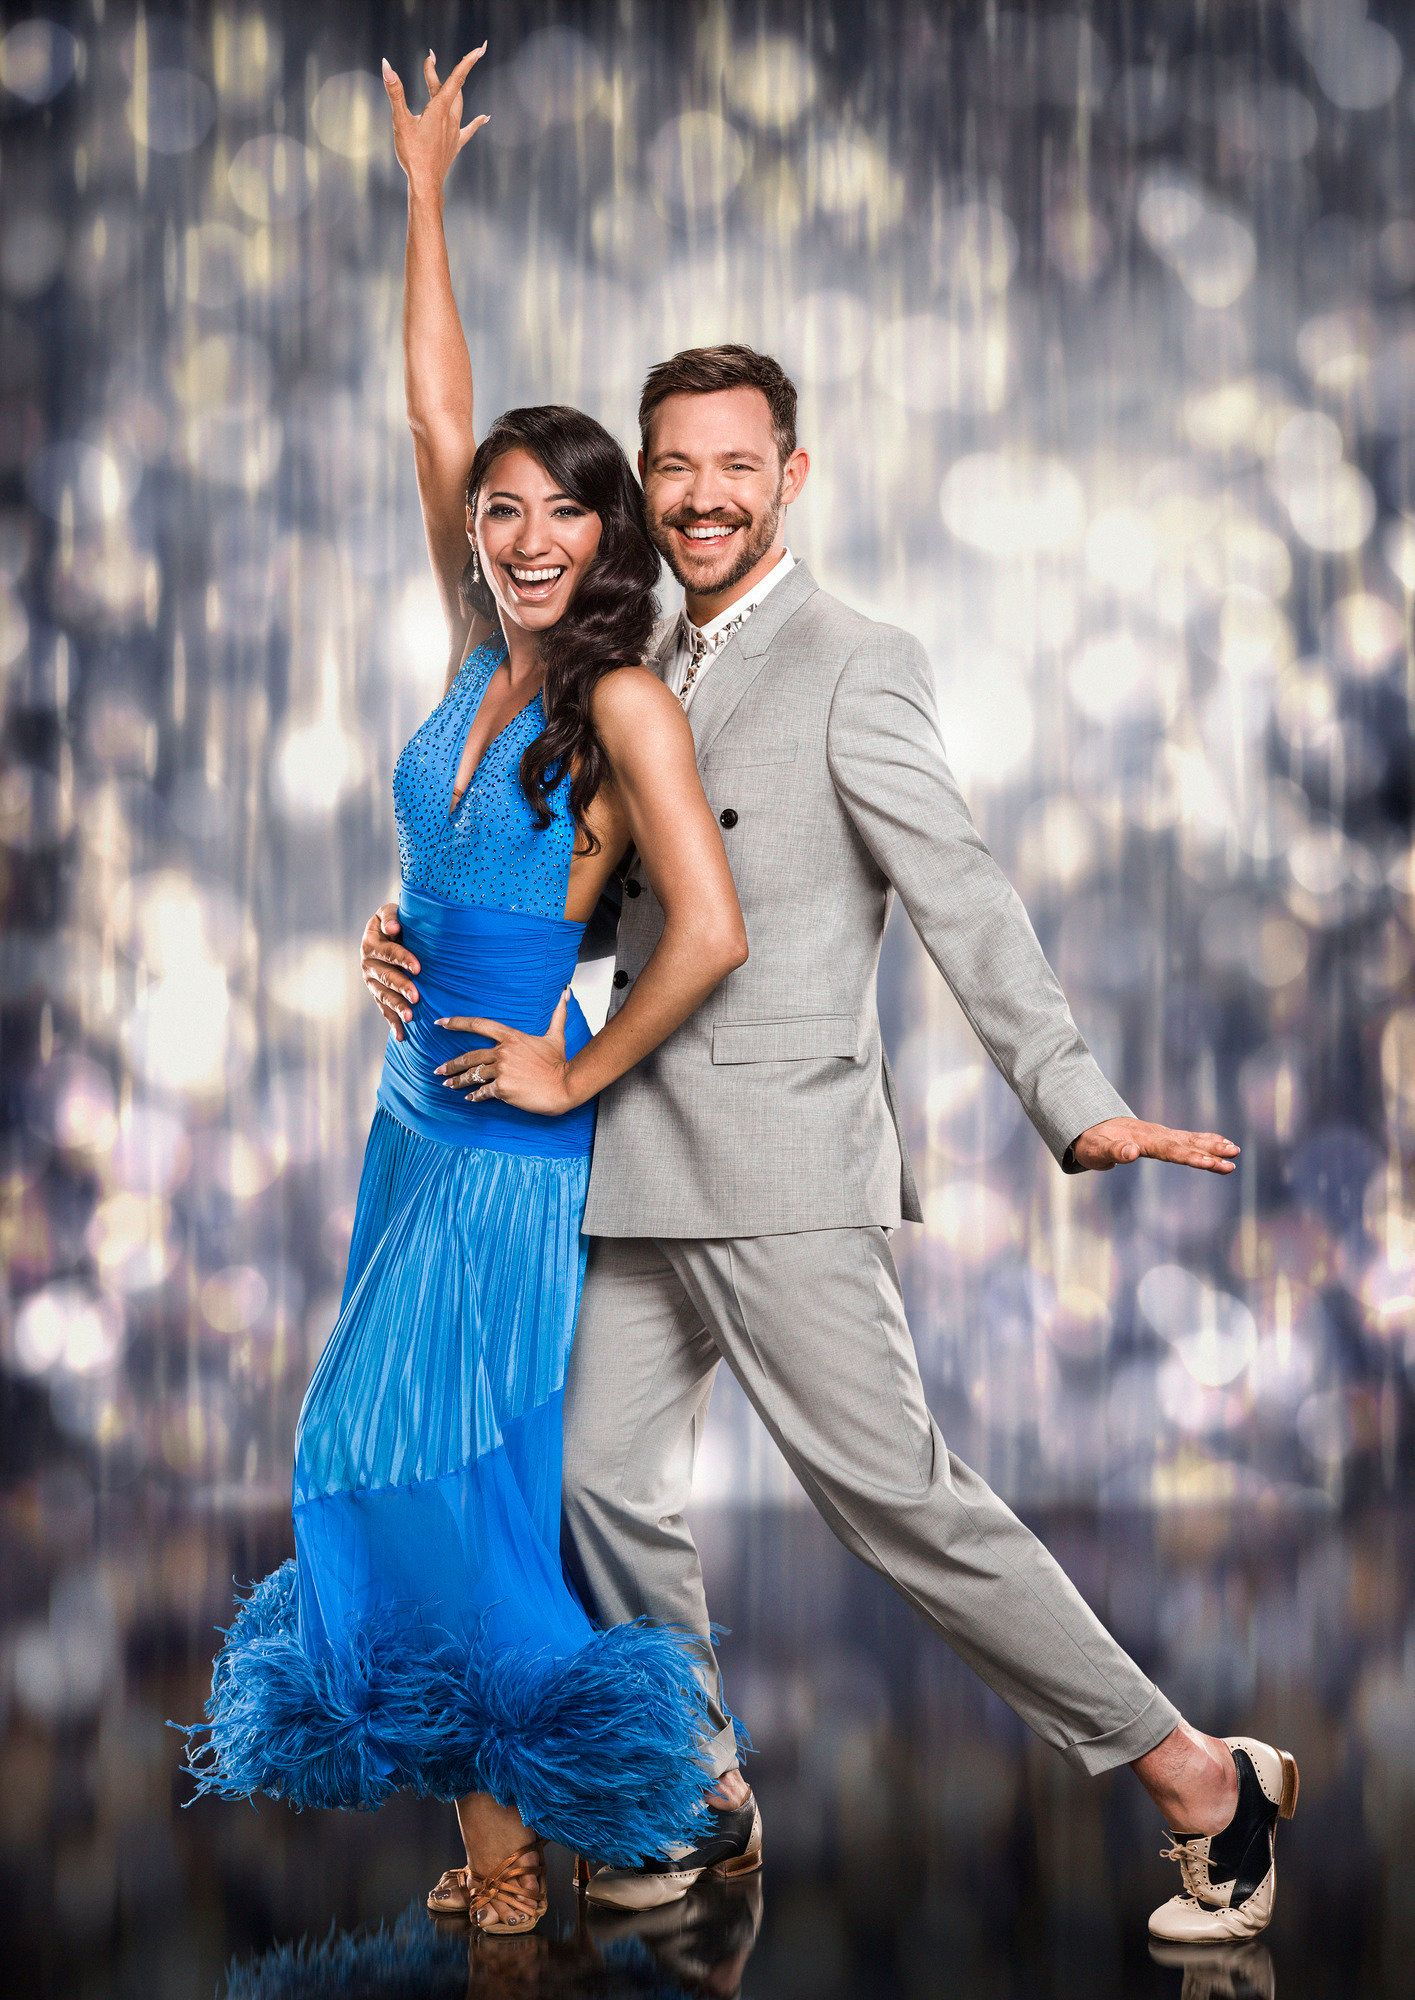 Will Young's 'Strictly' Partner, Karen Clifton, Breaks Silence On His